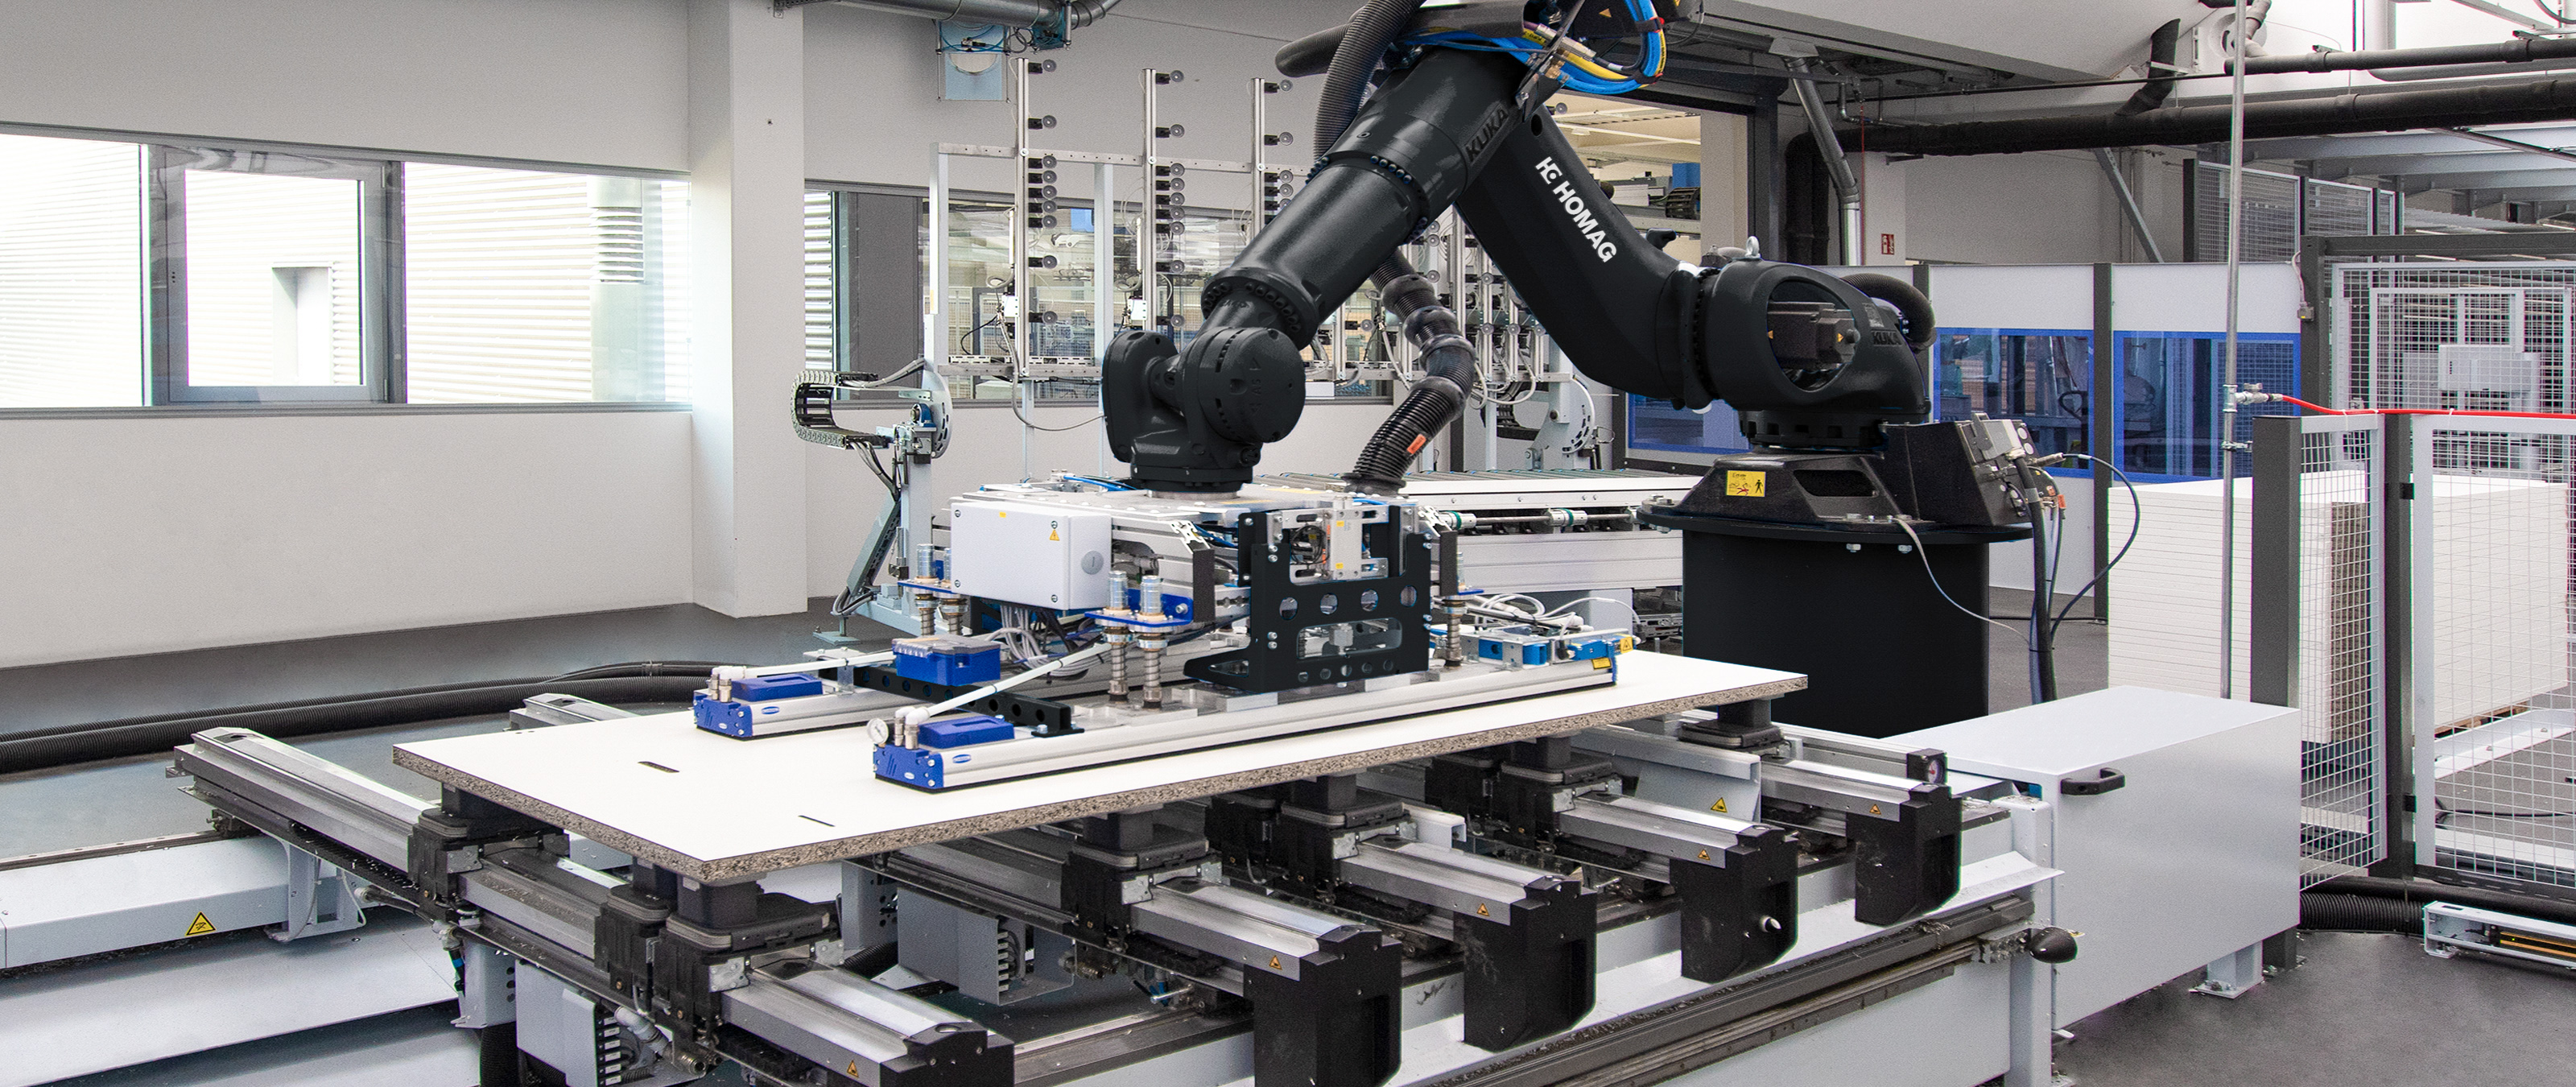 Robot management FEEDBOT on CNC processing centers | HOMAG